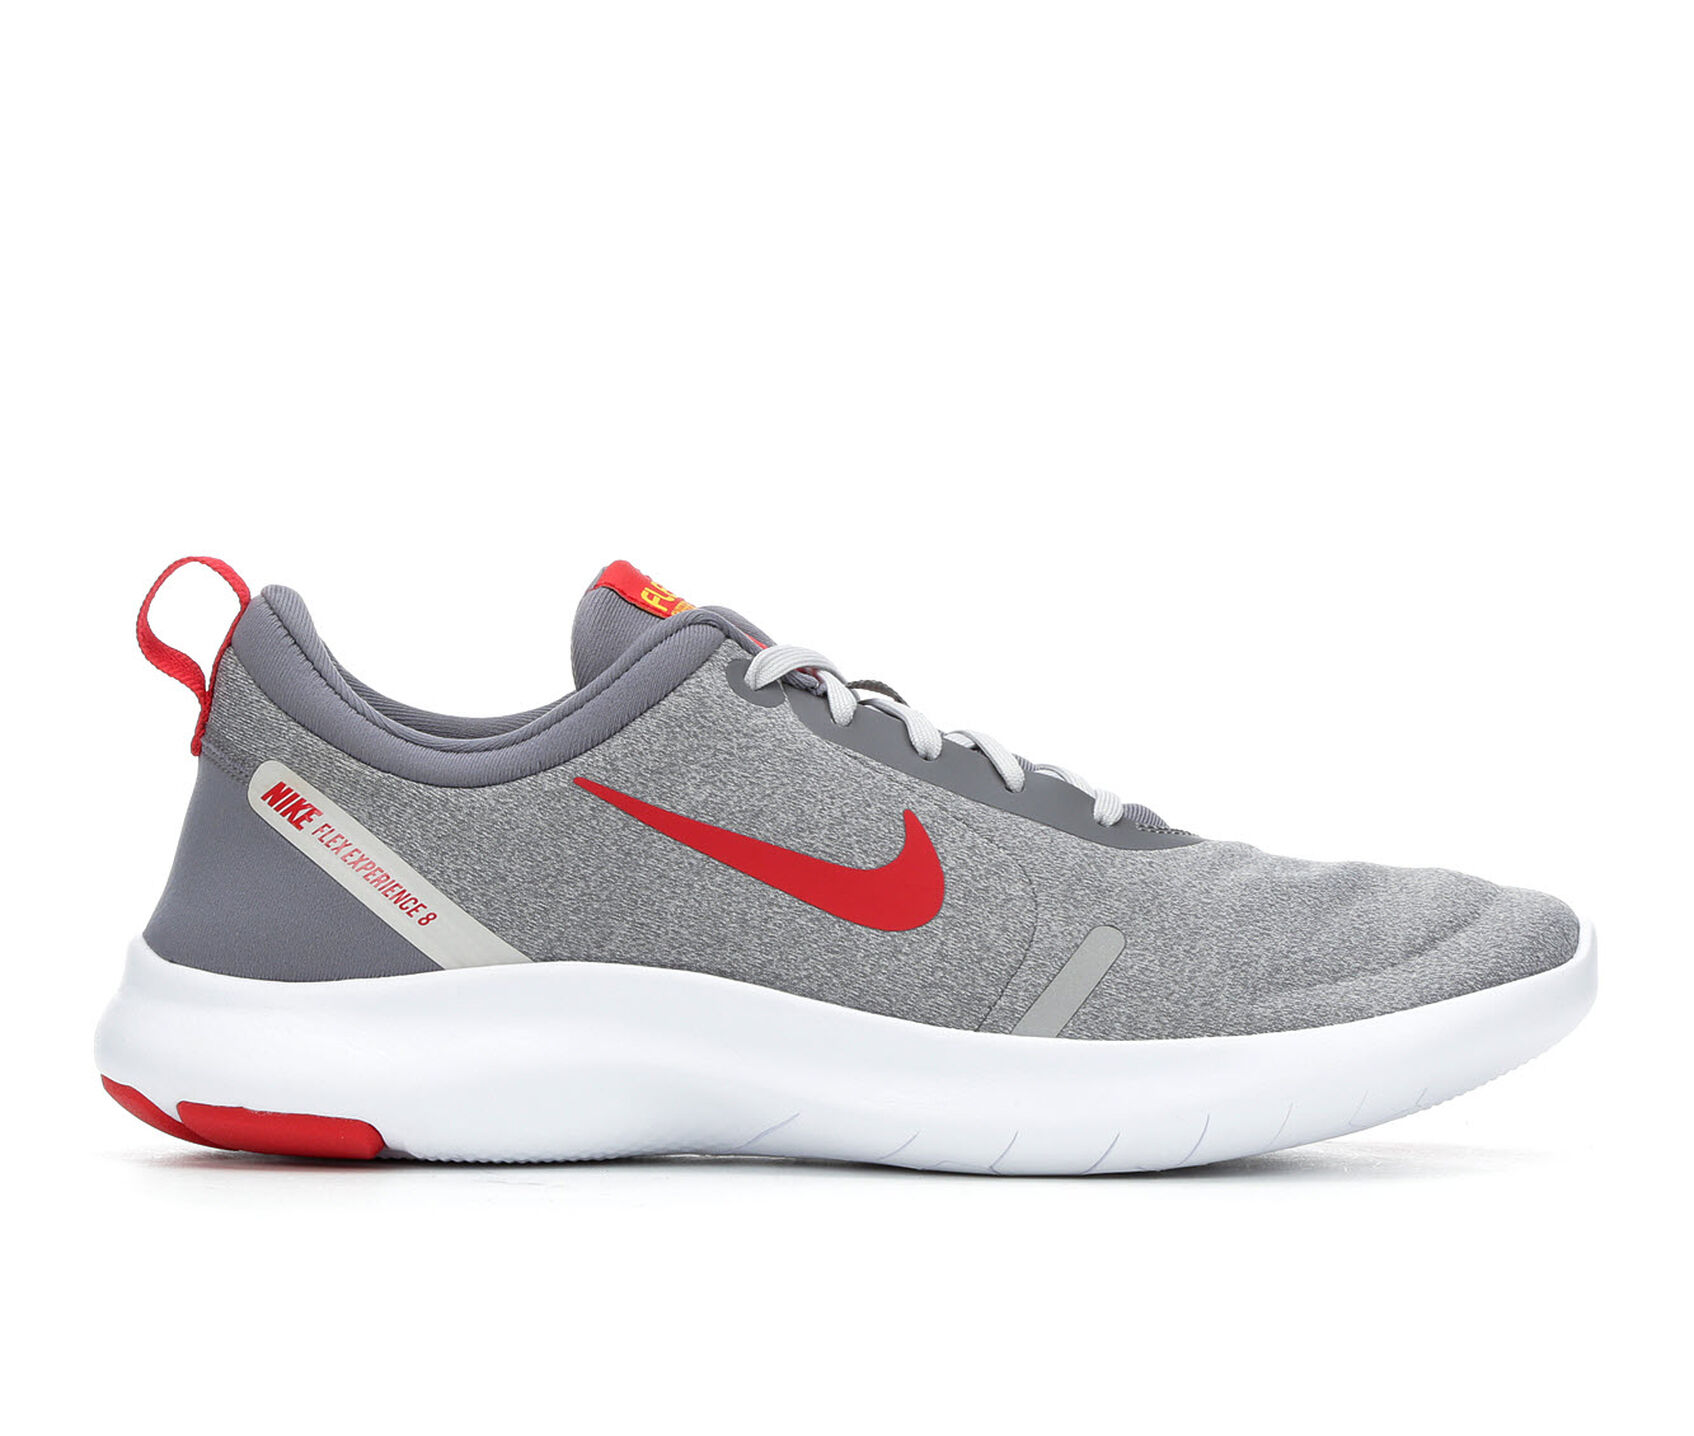 a340d5ae42 Men's Nike Flex Experience Rn 8 Running Shoes | Shoe Carnival